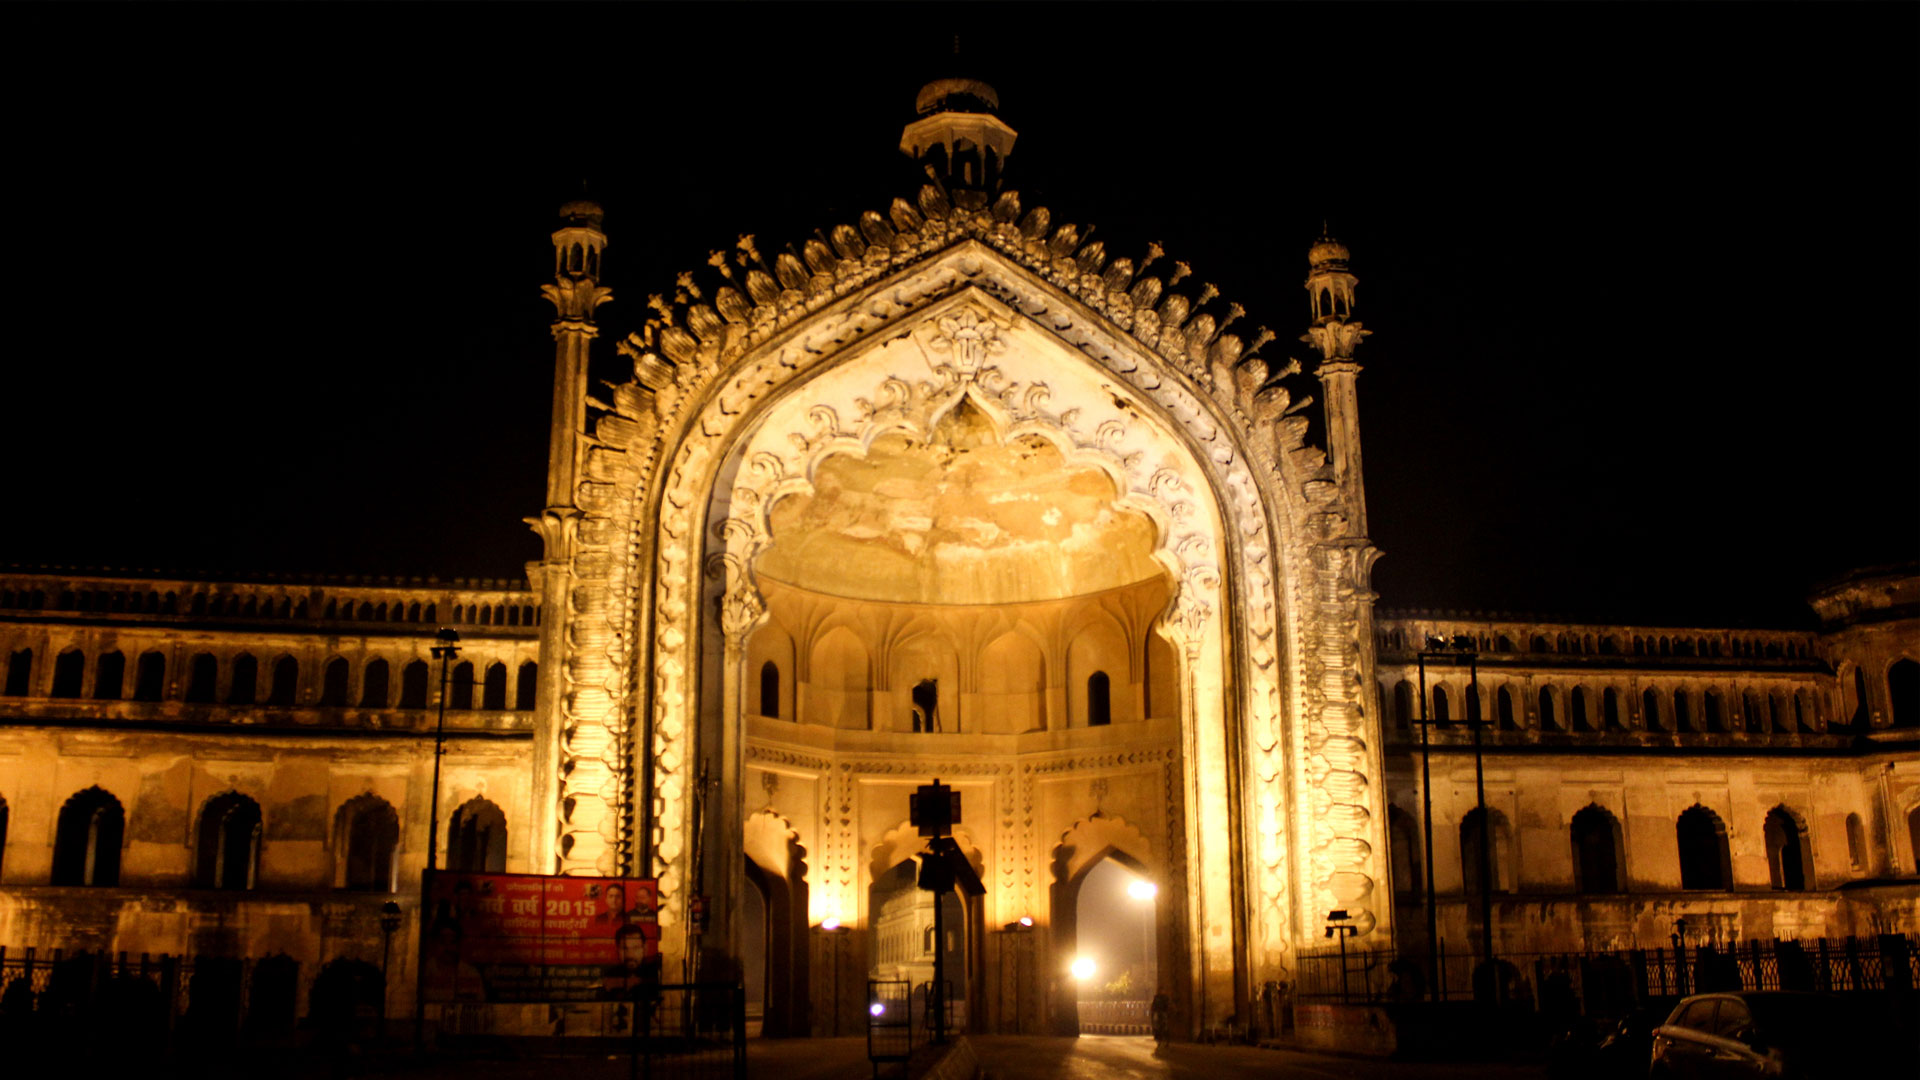 Rumi Darwaza Lucknow, 10 things not to miss when you're in Lucknow - Via.com Travel Blog